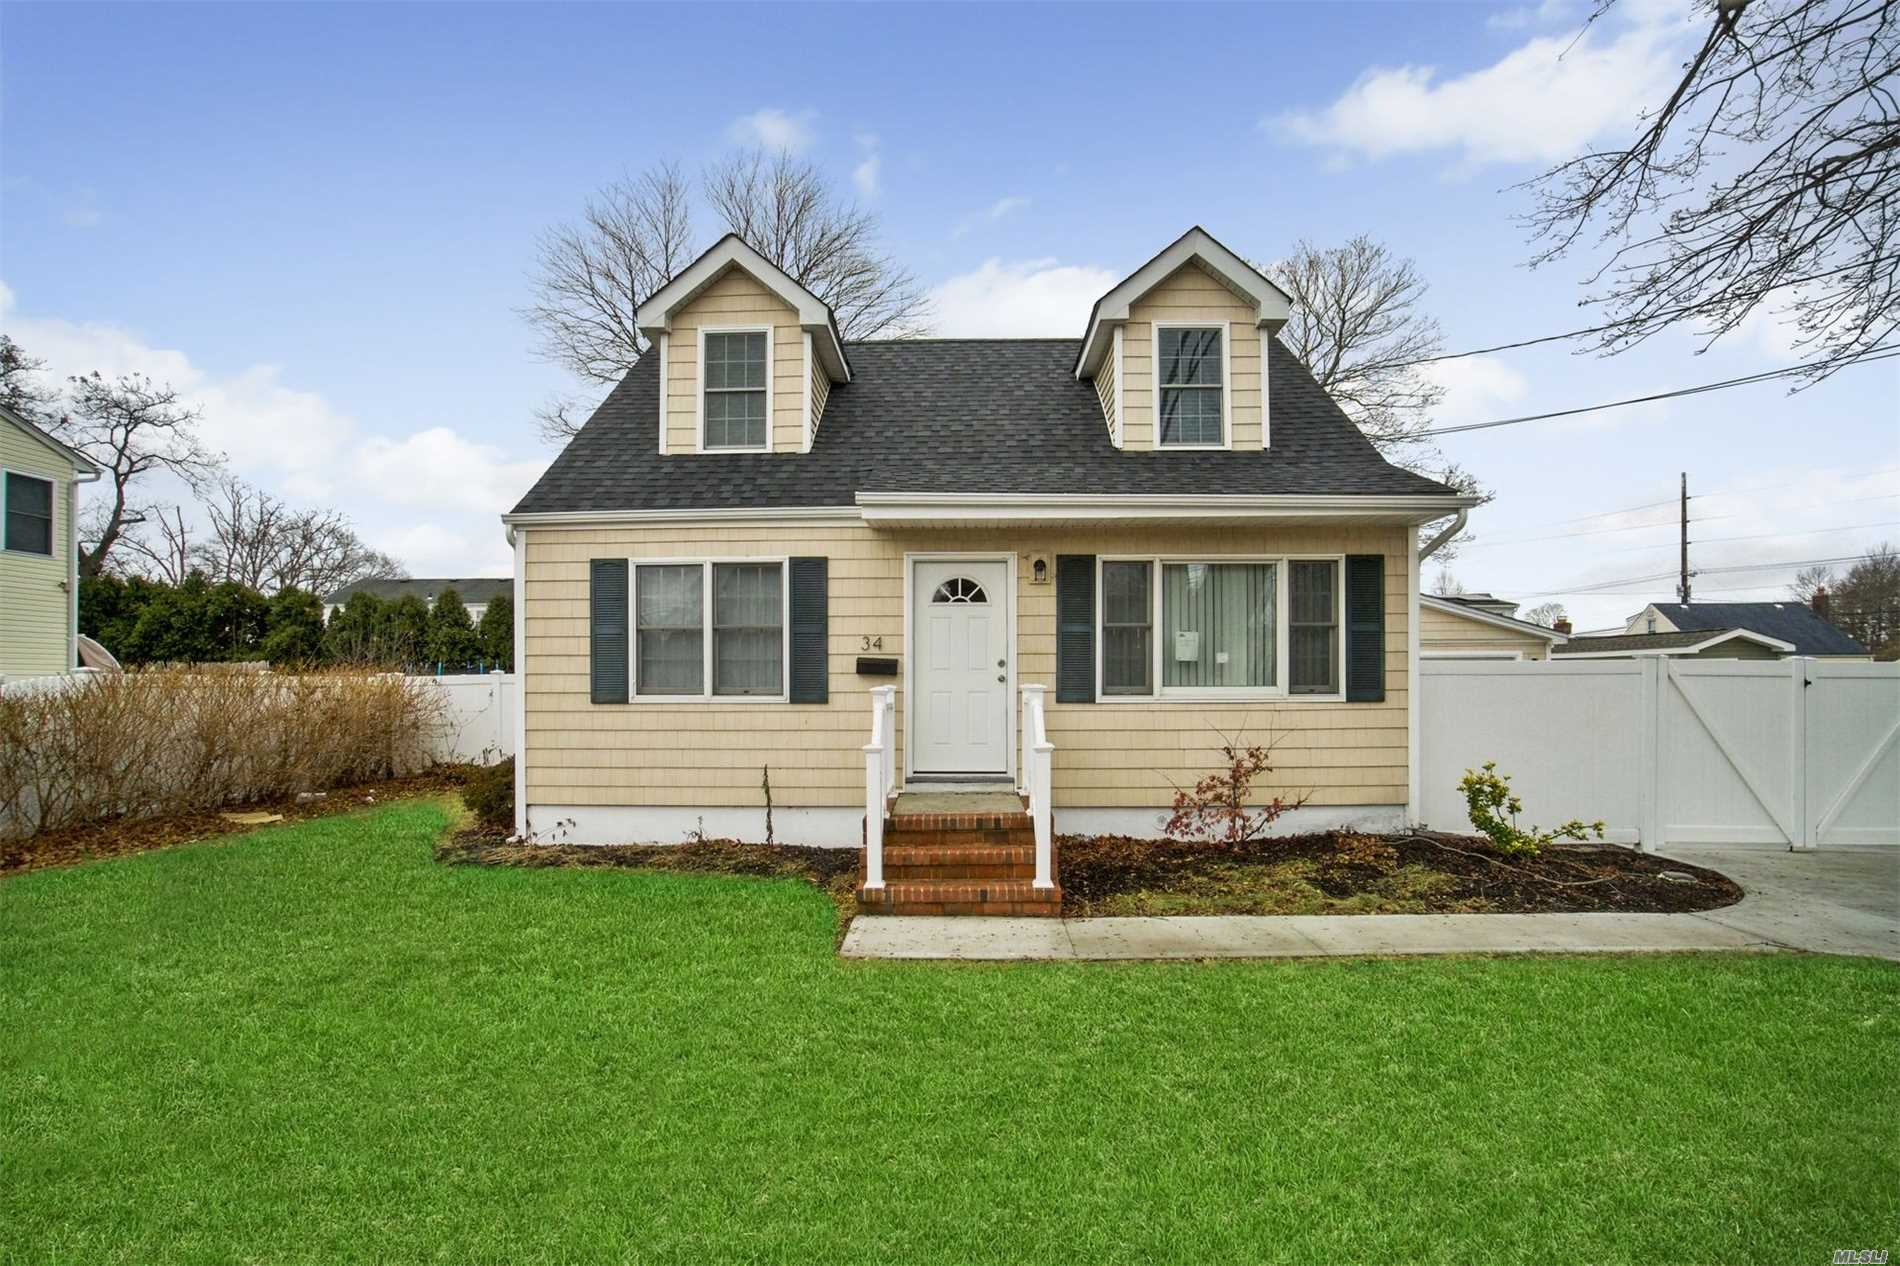 Photo of home for sale at 34 Chelsea Ave, West Babylon NY